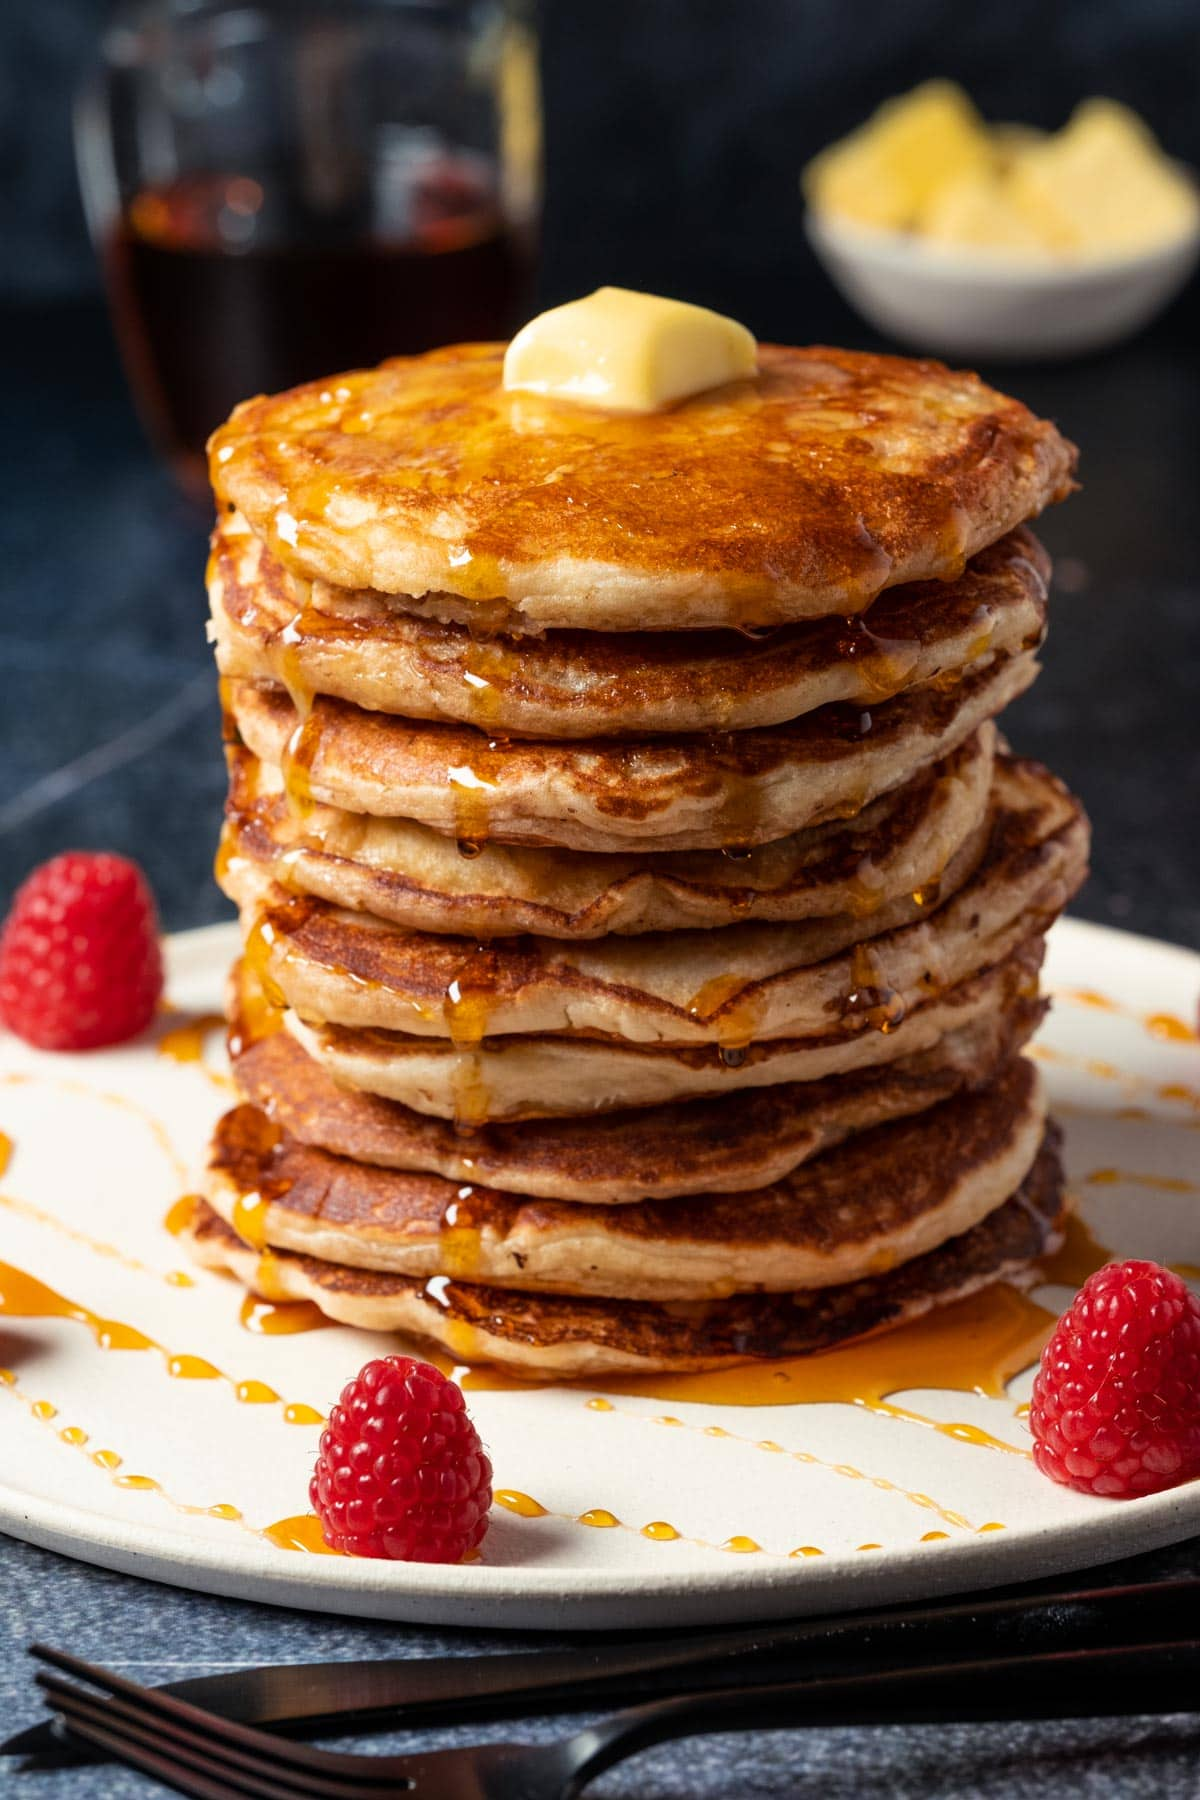 Stack of pancakes topped with butter and drizzled with syrup, on a white plate.